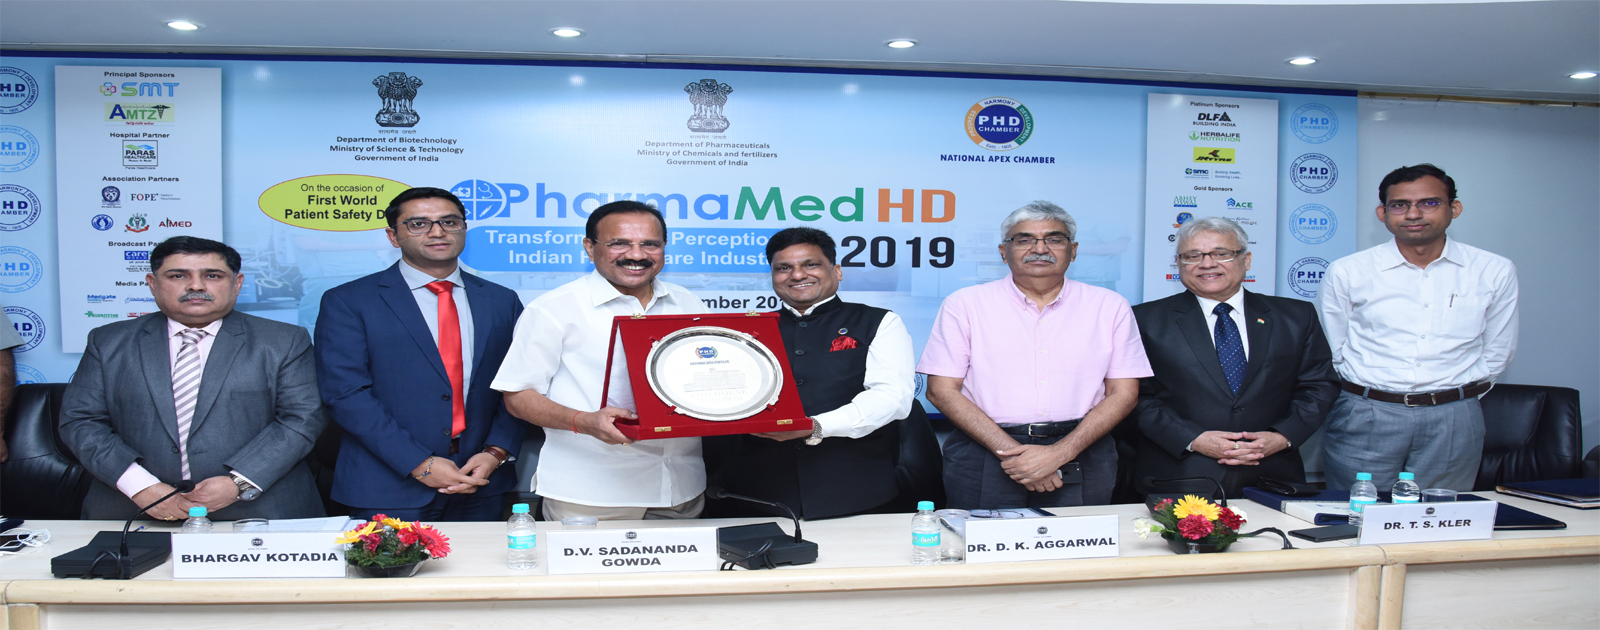 6th Pharmamed HD – Transforming the perception of Indian Healthcare Industry